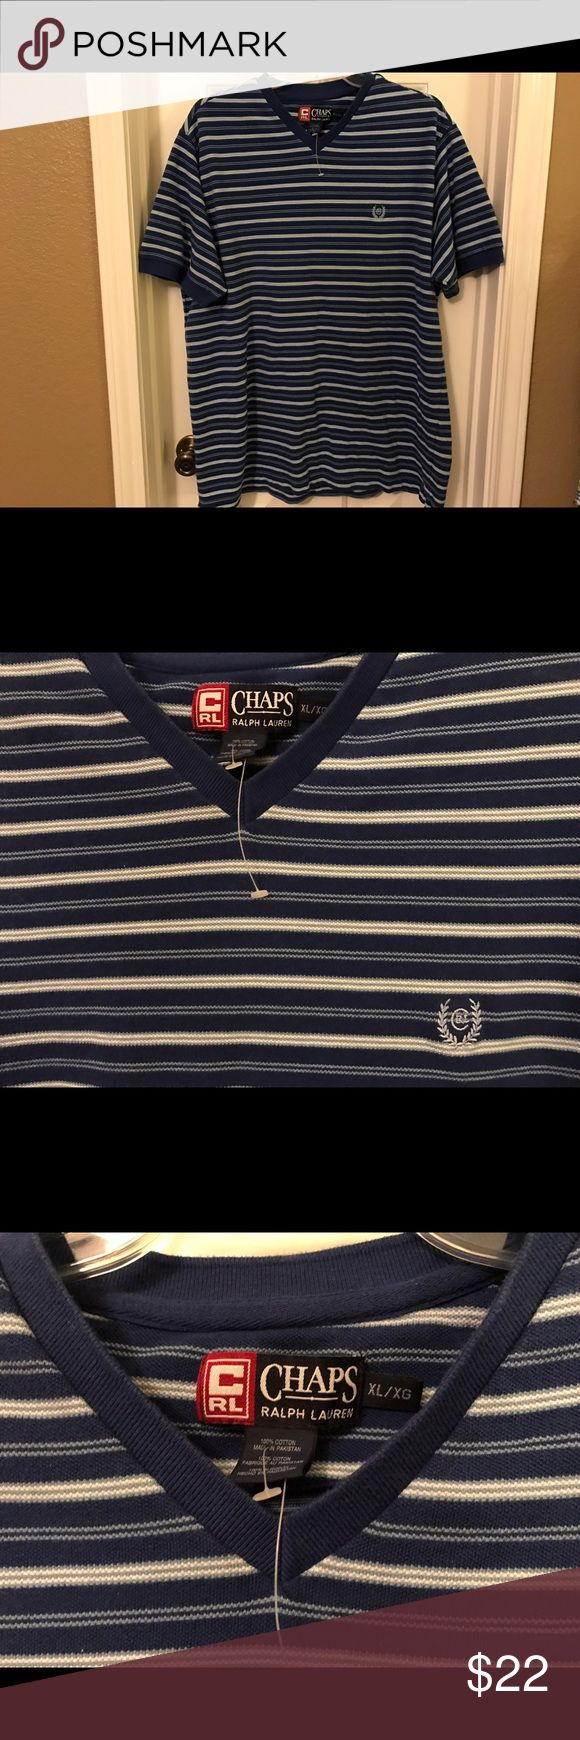 Chaps Ralph Lauren Polo Golf V-Neck Shirt XL NWOT Chaps Ralph Lauren Polo Golf V-Neck Shirt Size XL. It is new without tags--still has the plastic tag holders though. It is royal blue with white and light blue stripes. 100% cotton. Smoke-free home. Chaps Shirts Polos